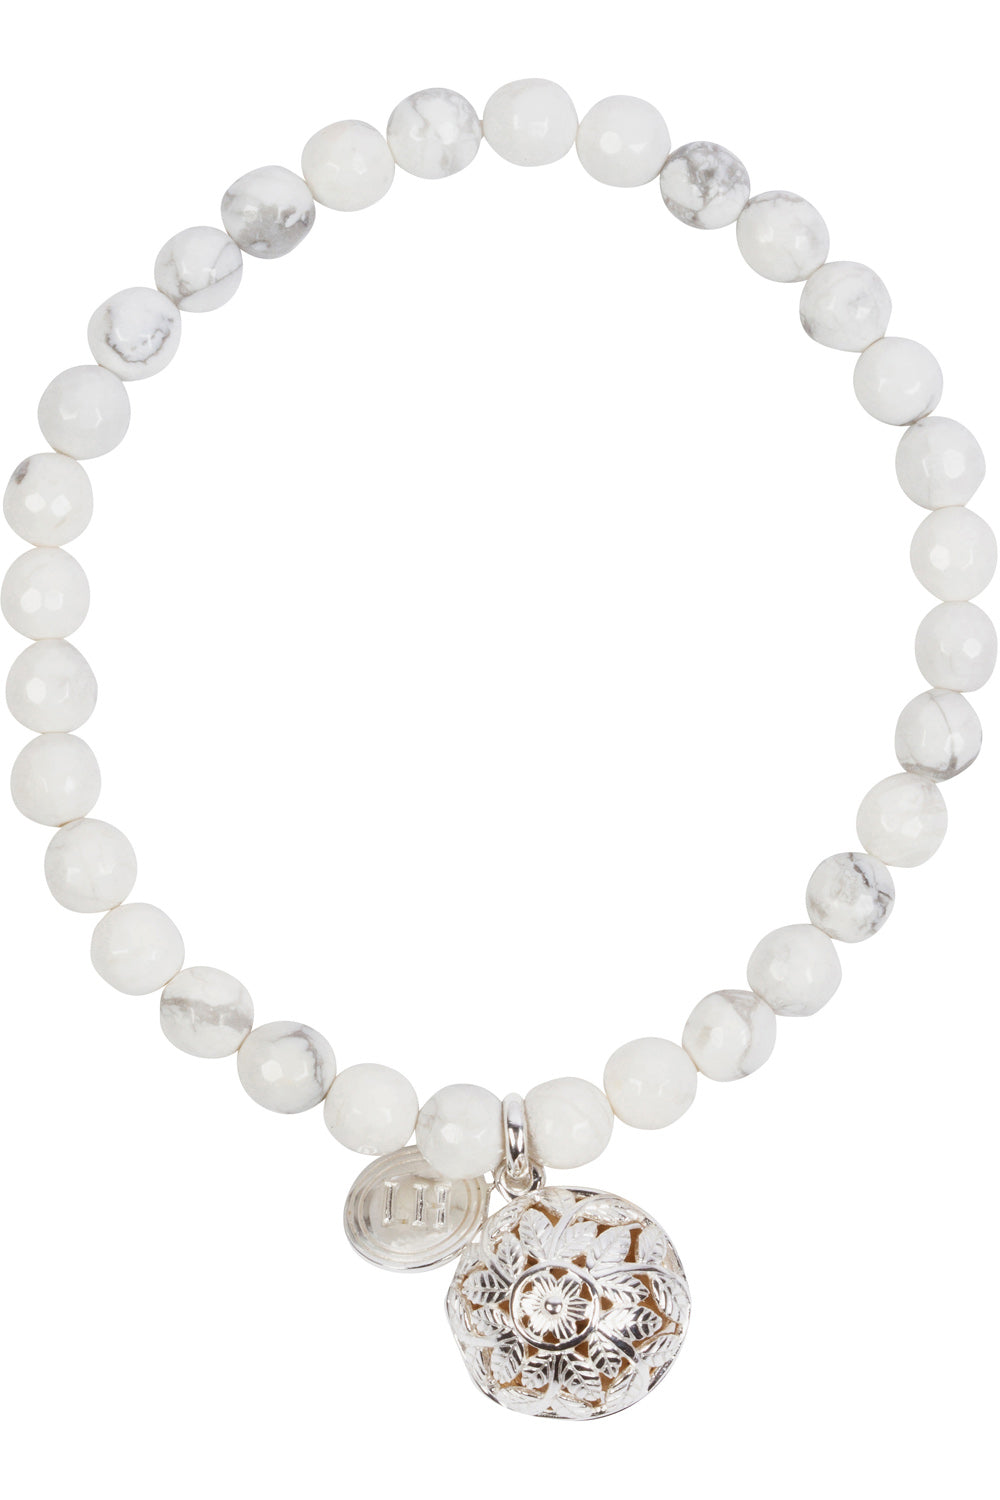 Dolomite Fragrance Bracelet with Flora Charm